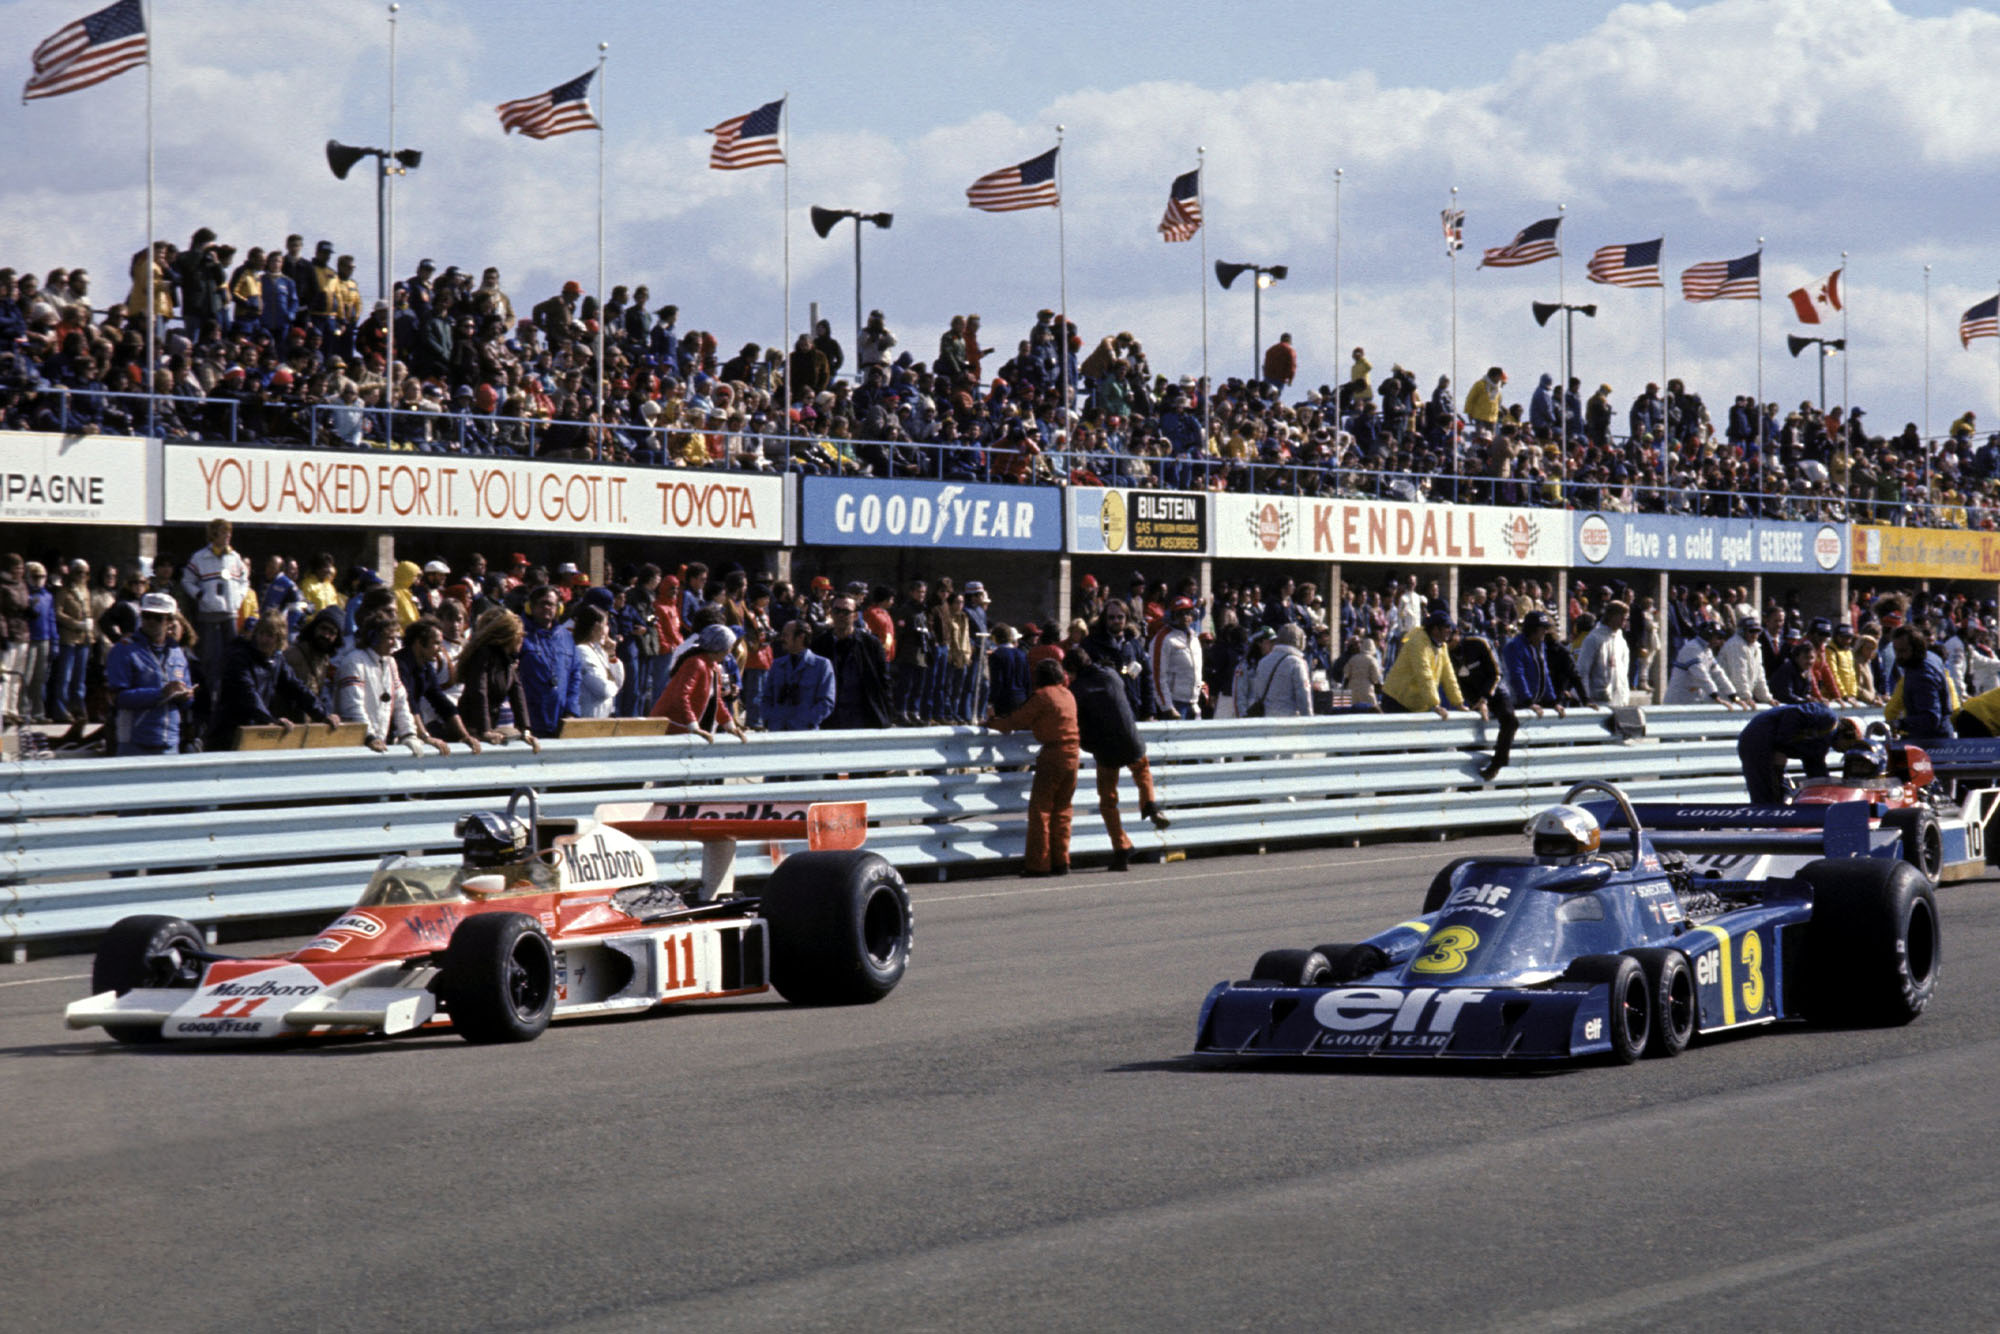 James Hunt (McLaren, left) and Jody Scheckter (Tyrrell, right) line up on the grid at the race start, United States Grand Prix East, Watkins Glen.